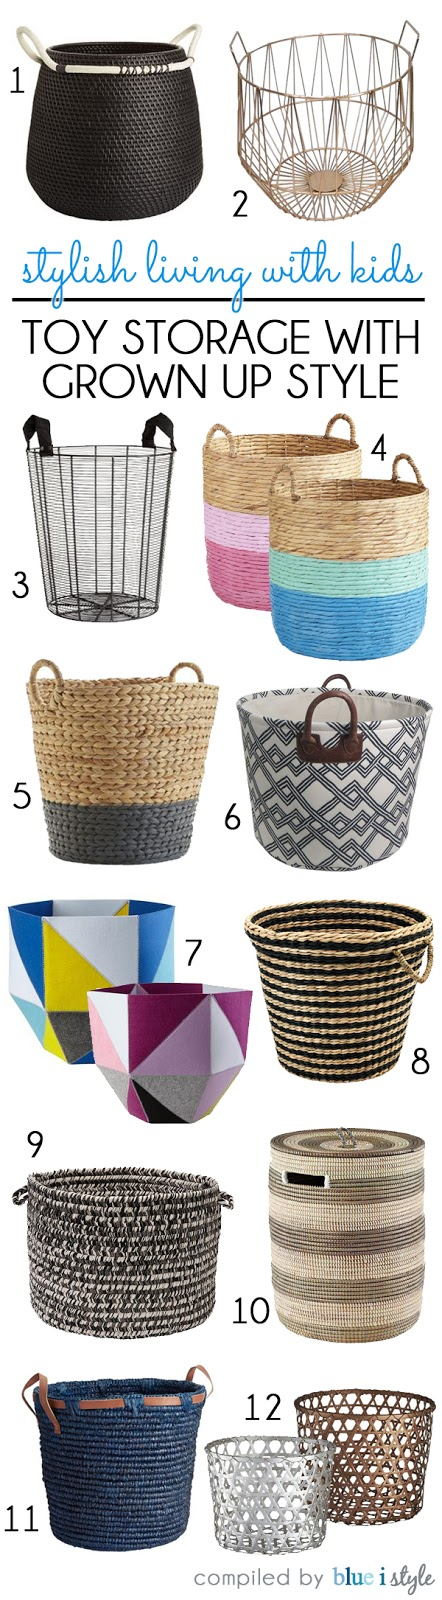 Baskets for Toy Storage with Grown Up Style